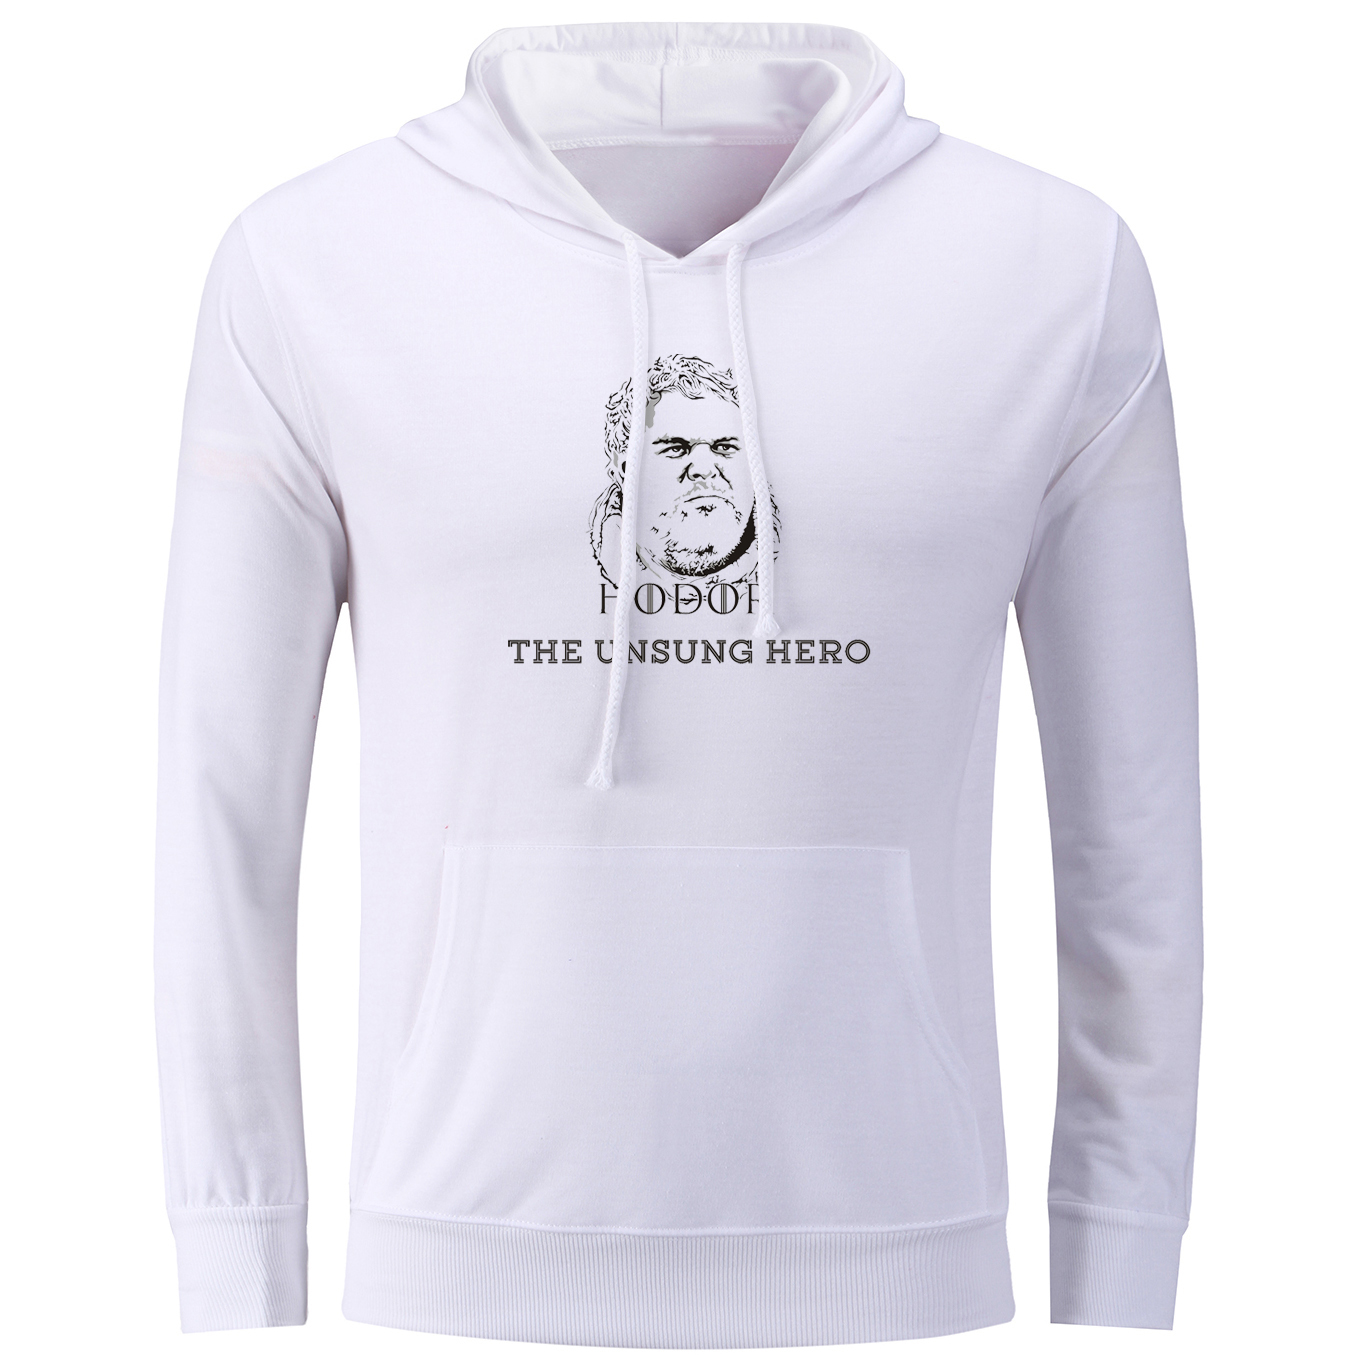 Imported From Abroad Game Of Thrones Hold Tlle Door Hodor Hoodies Men Women Boy Girl Sweatshirt Pullover Punk Jackets Holiday Tops Spring Autumn Coat Top Watermelons Men's Clothing